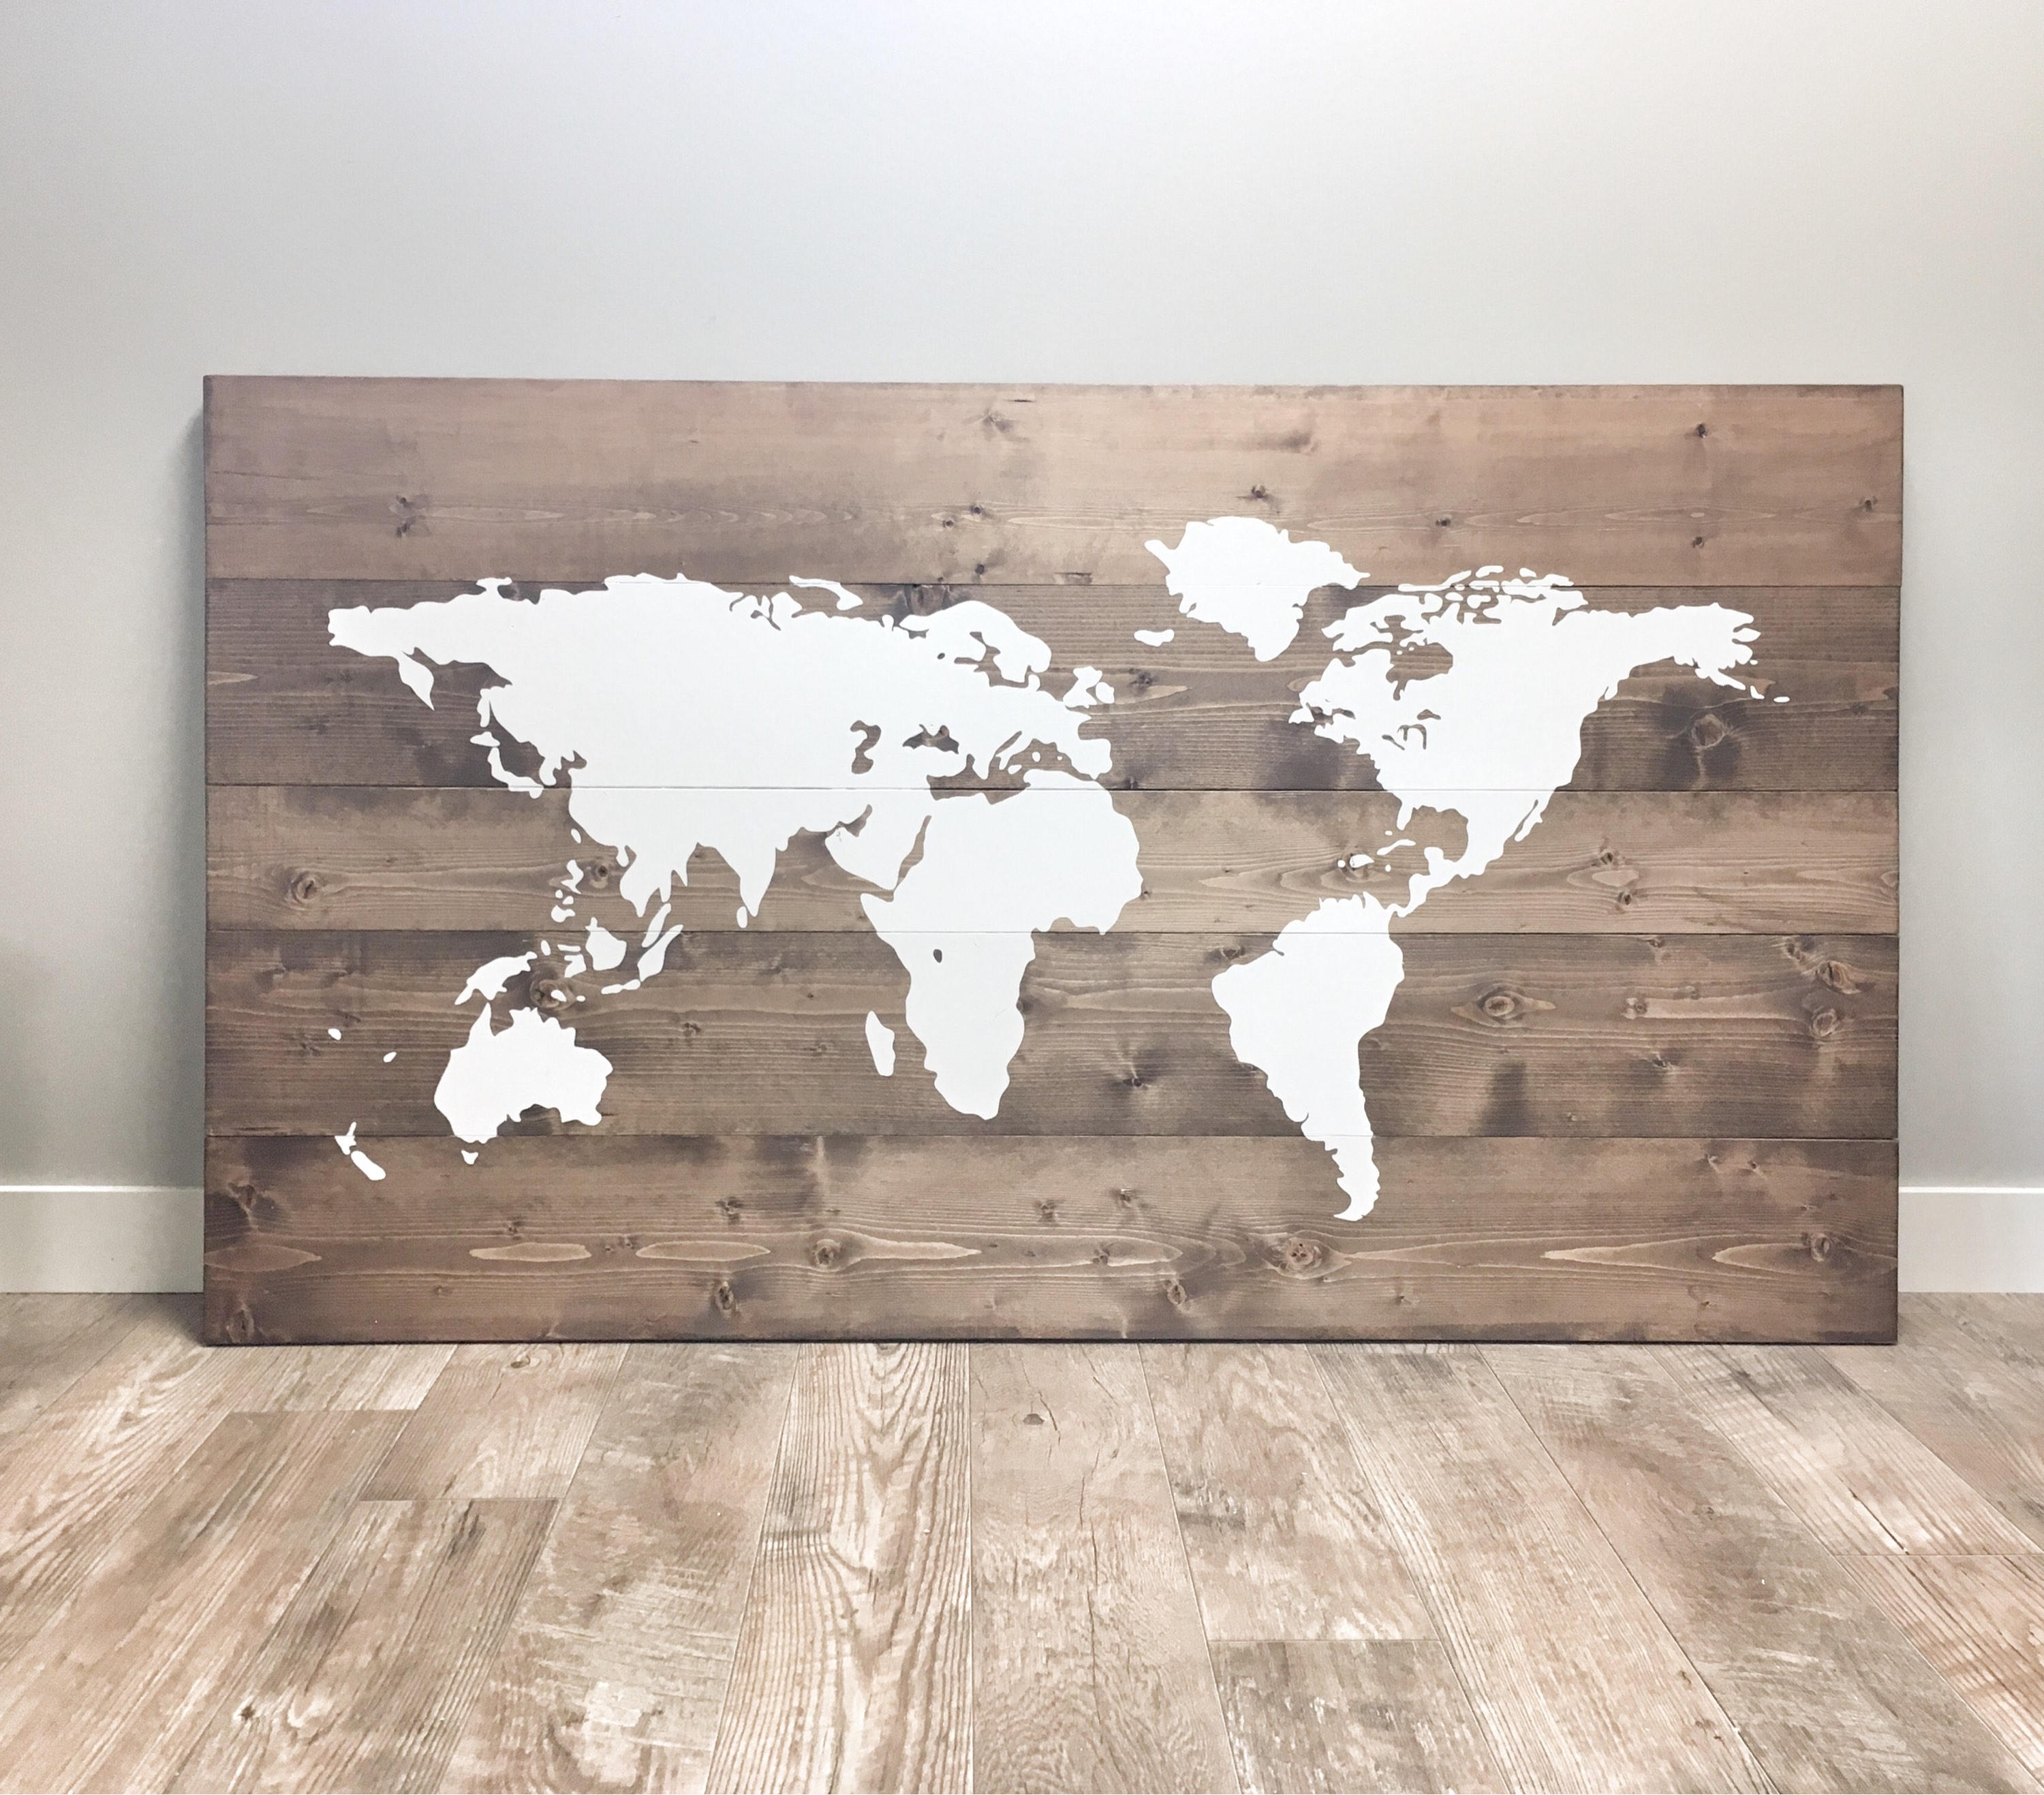 Most Recent Huge Rustic Wood World Map, Rustic Decor, Farmhouse Decor, Rustic Inside Wooden World Map Wall Art (View 8 of 15)